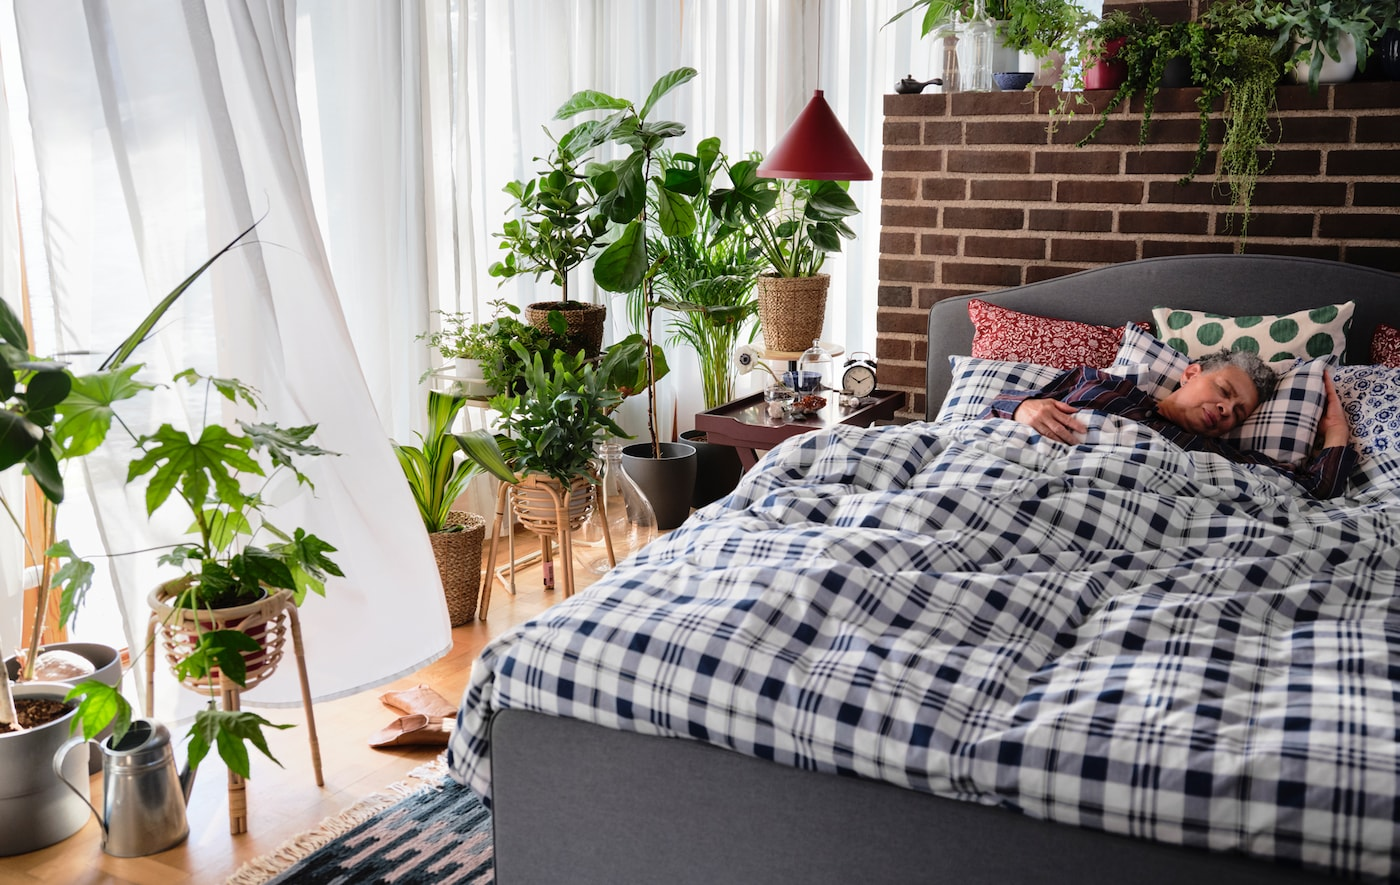 A woman sleeps in an upholstered HAUGA bed with a checked duvet cover and surrounded by green plants.